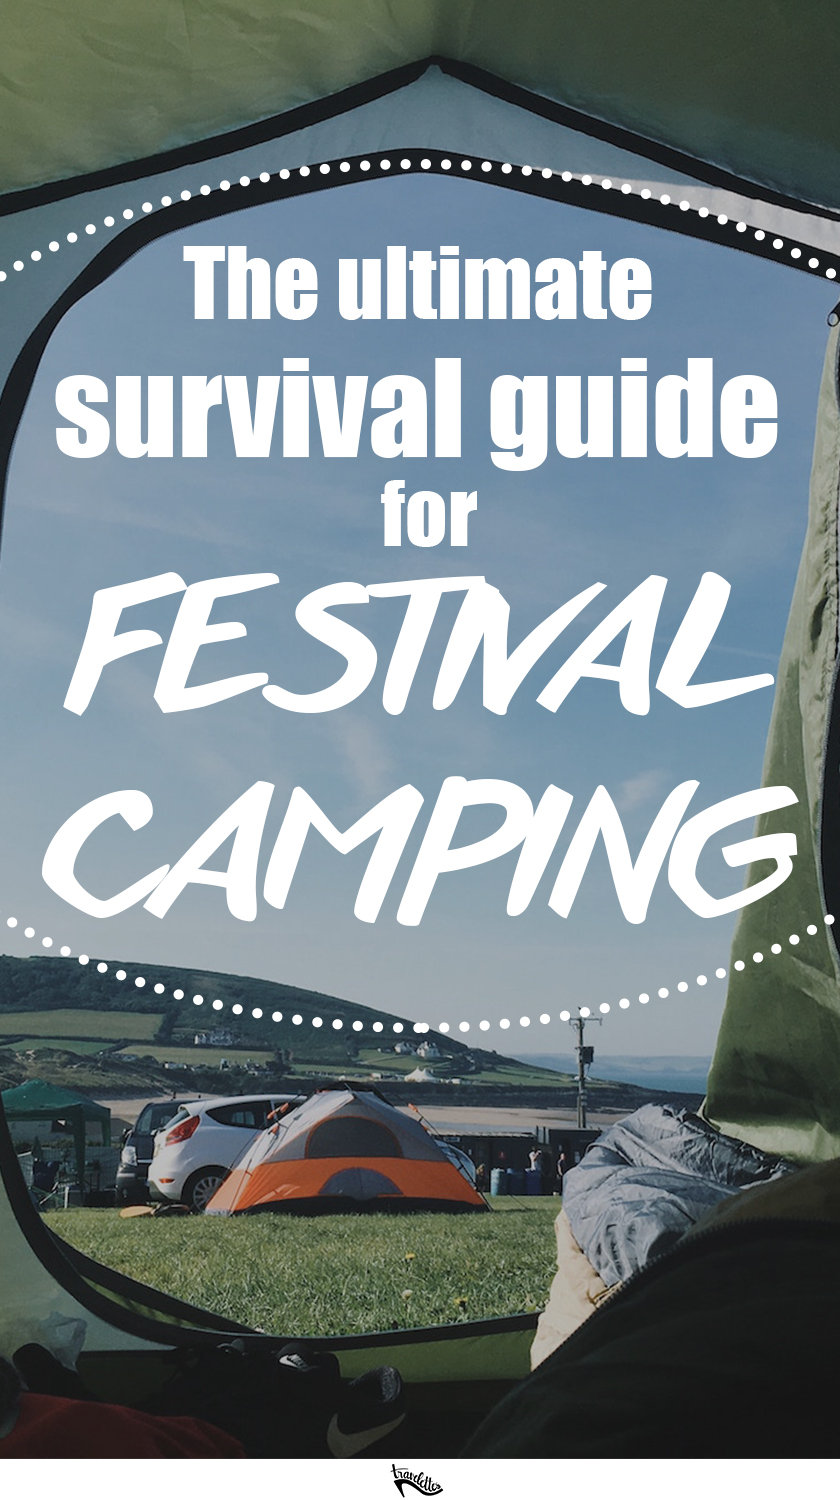 The long wait for summer is over, which can only mean one thing: it's festival season! This is our ultimate survival guide for festival camping this summer!